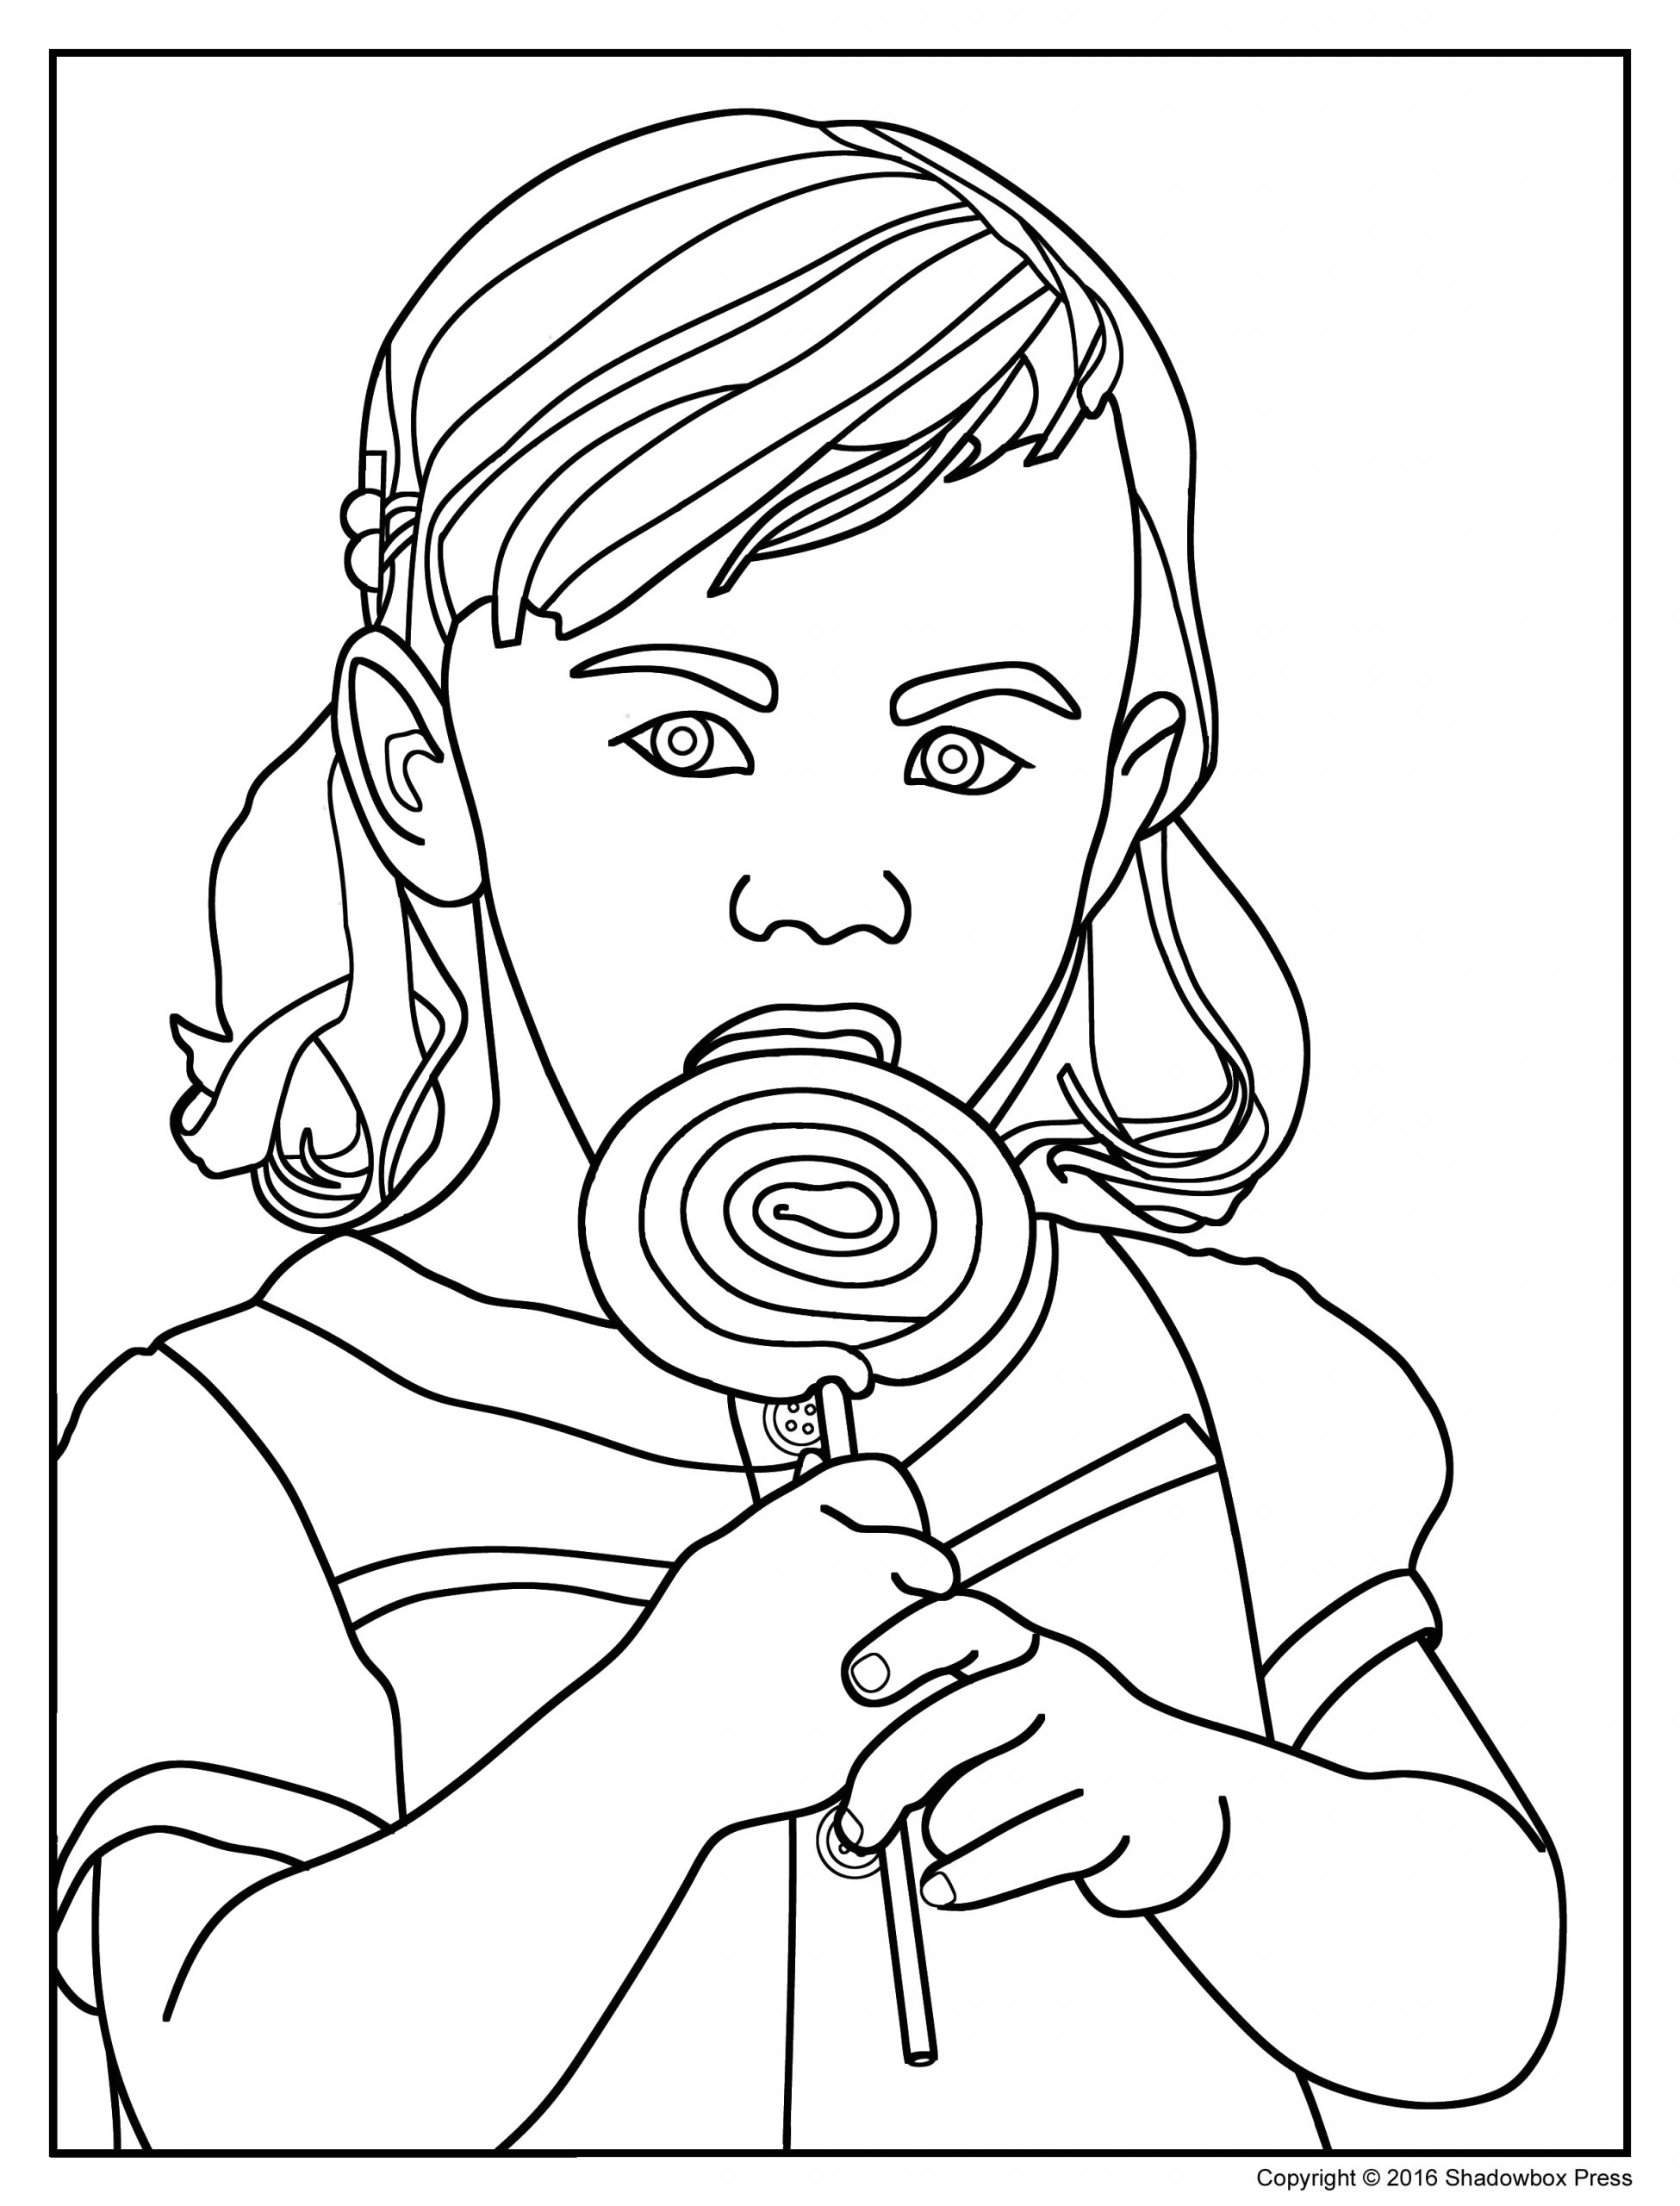 coloring pages for dementia patients